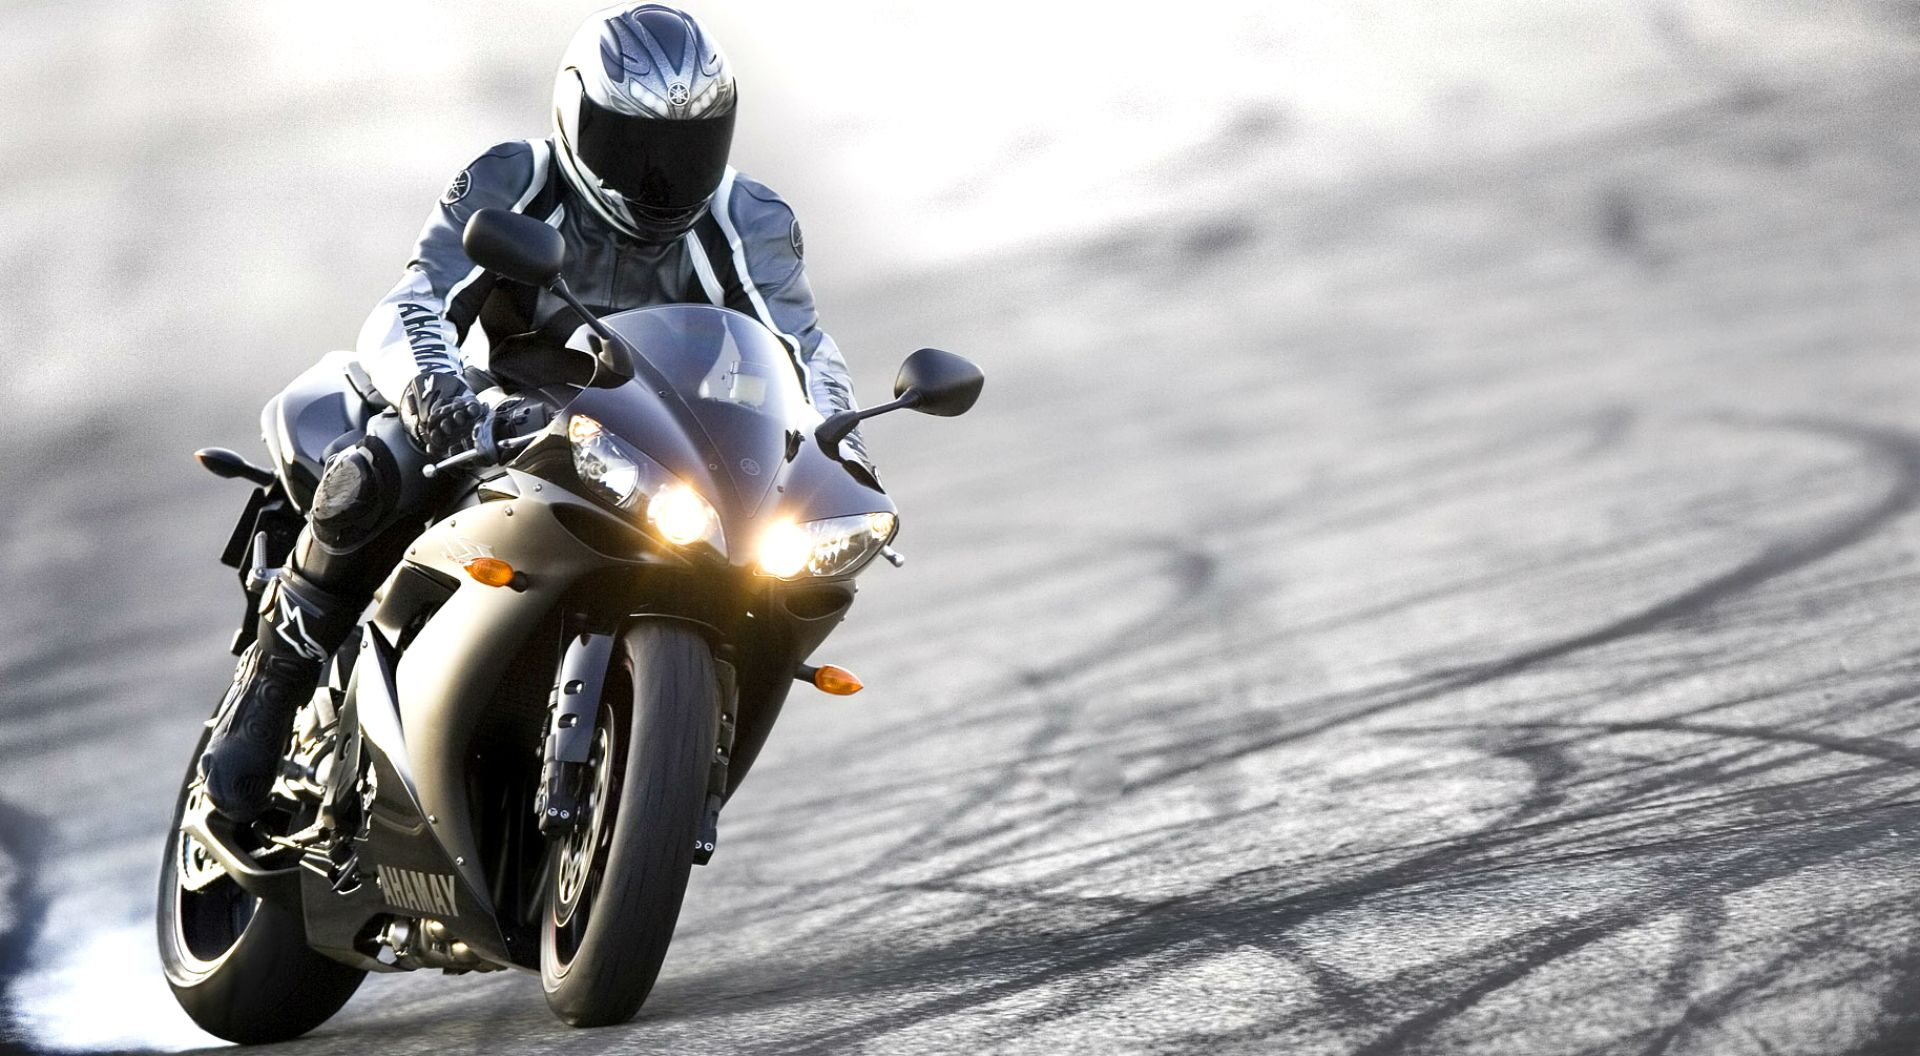 Bikes Wallpapers Windows 7 Download With Images Widescreen